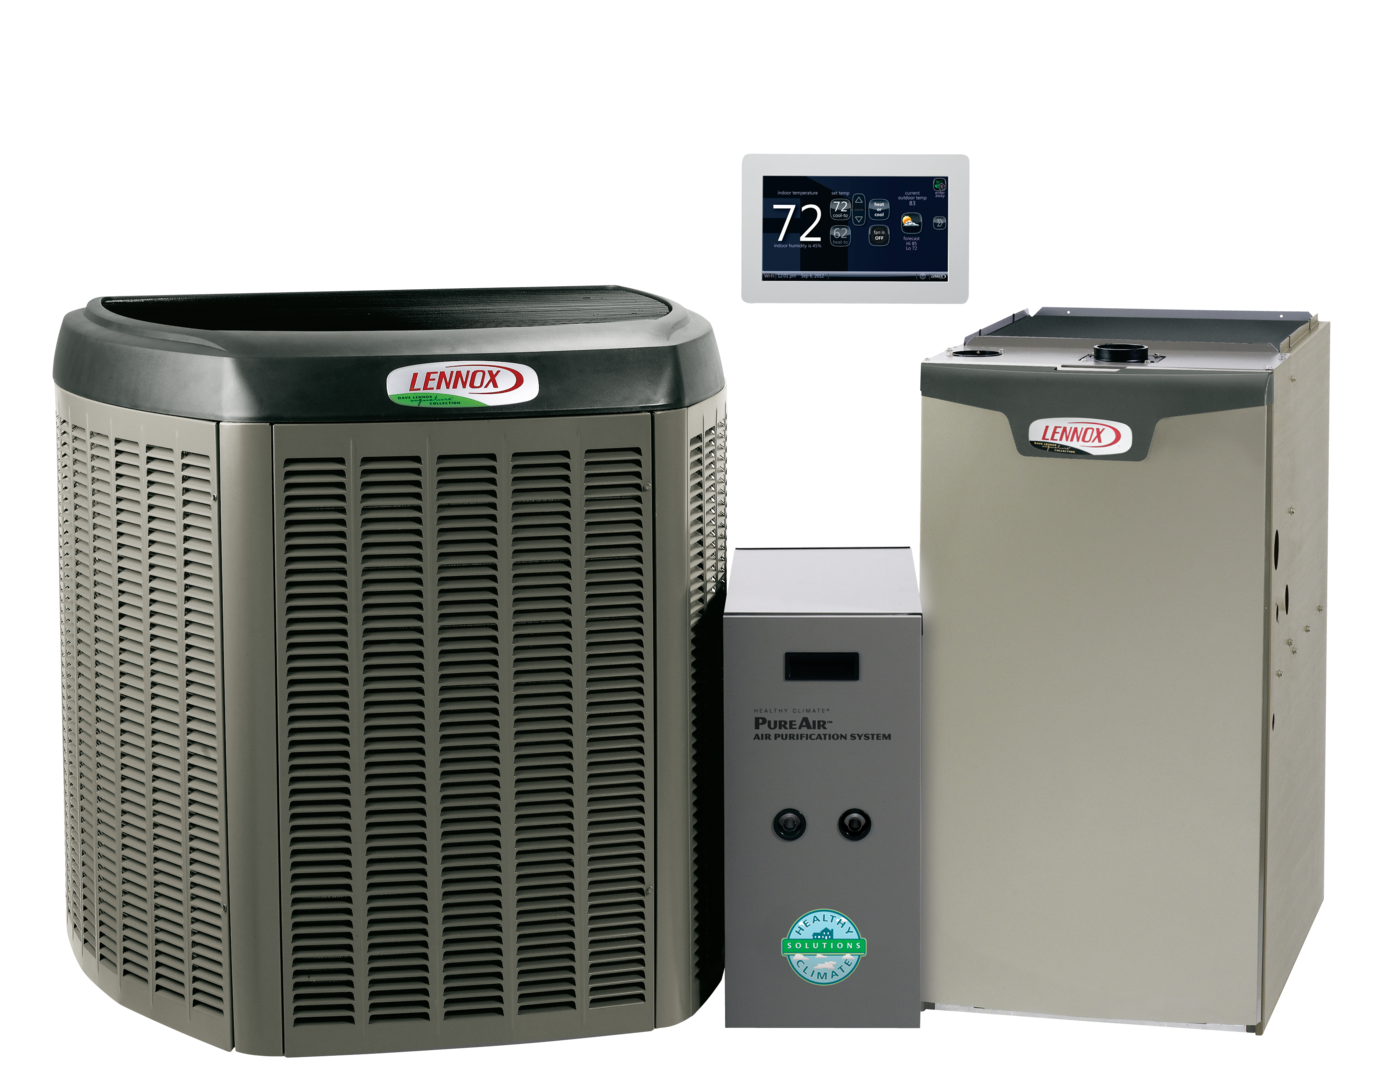 We Want To Make You Feel Perfectly Comfortable With Our High Quality Dependable And Affordable Heating Cooling With Images Comforters Cozy Heat Pump Heat